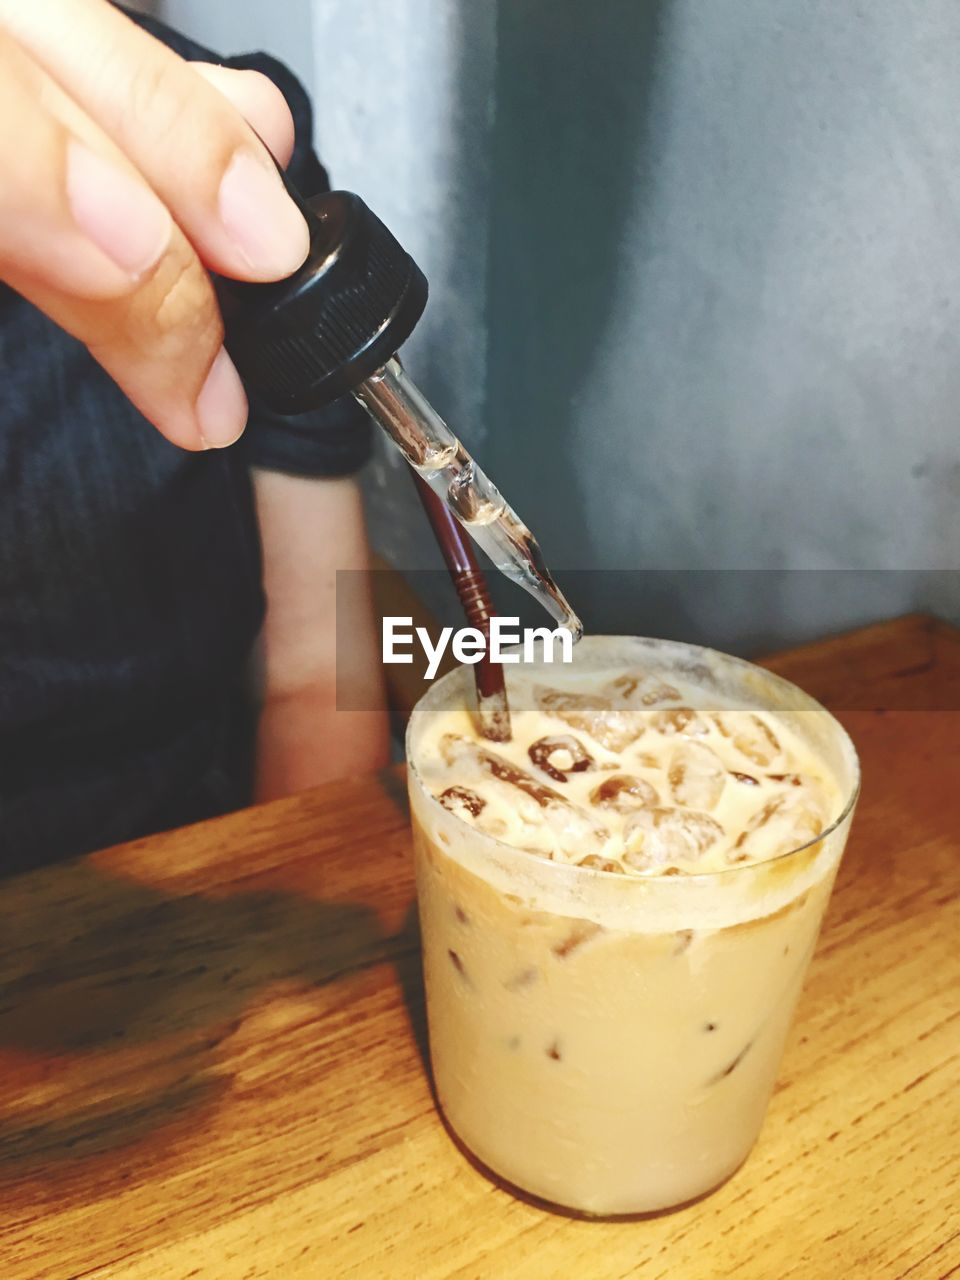 Cropped Image Of Person Adding Liquid In Iced Coffee Through Dropper At Restaurant